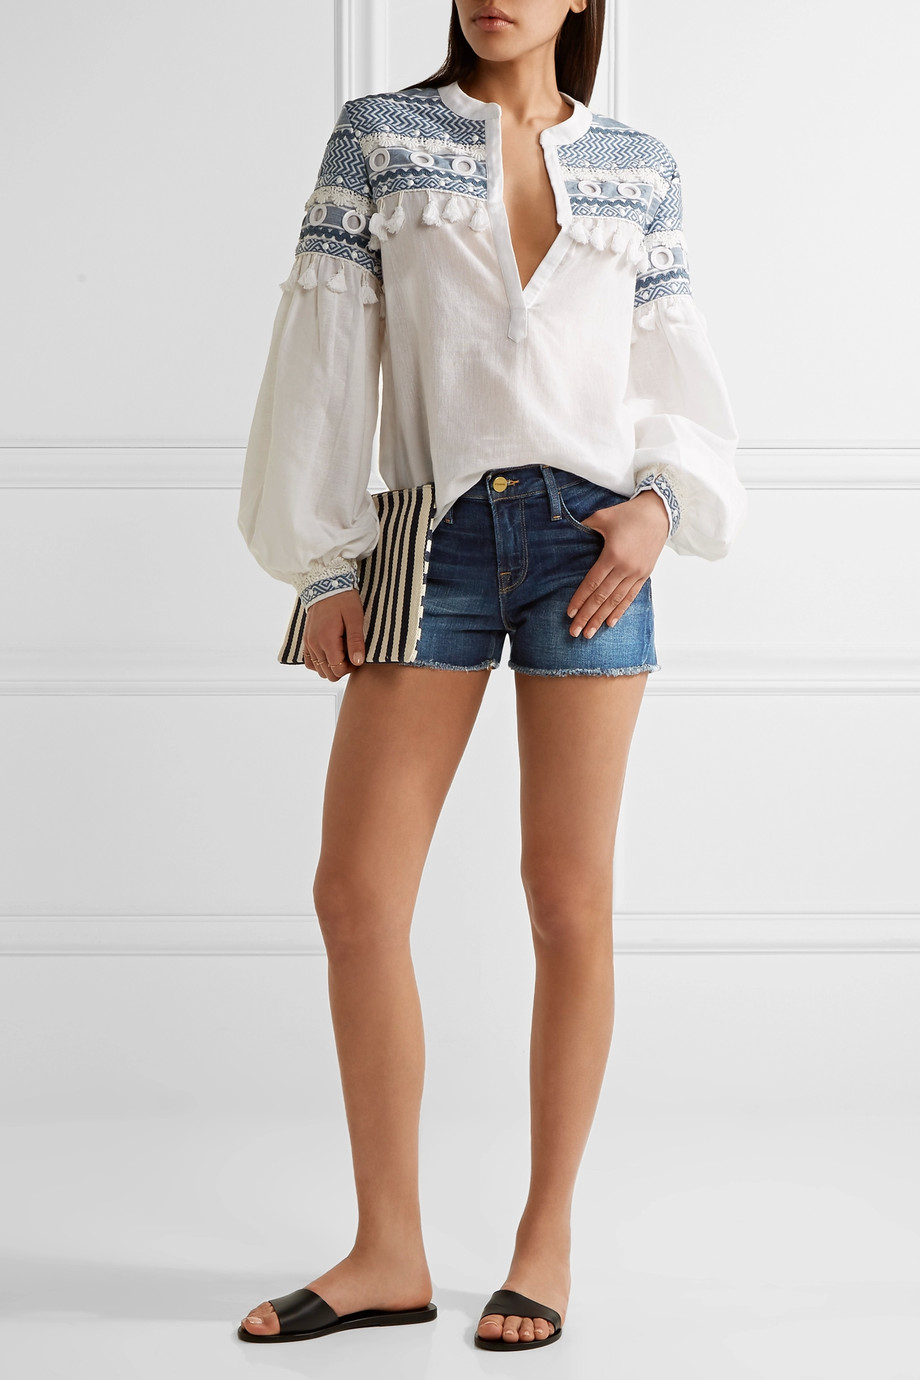 how to wear denim shorts 7